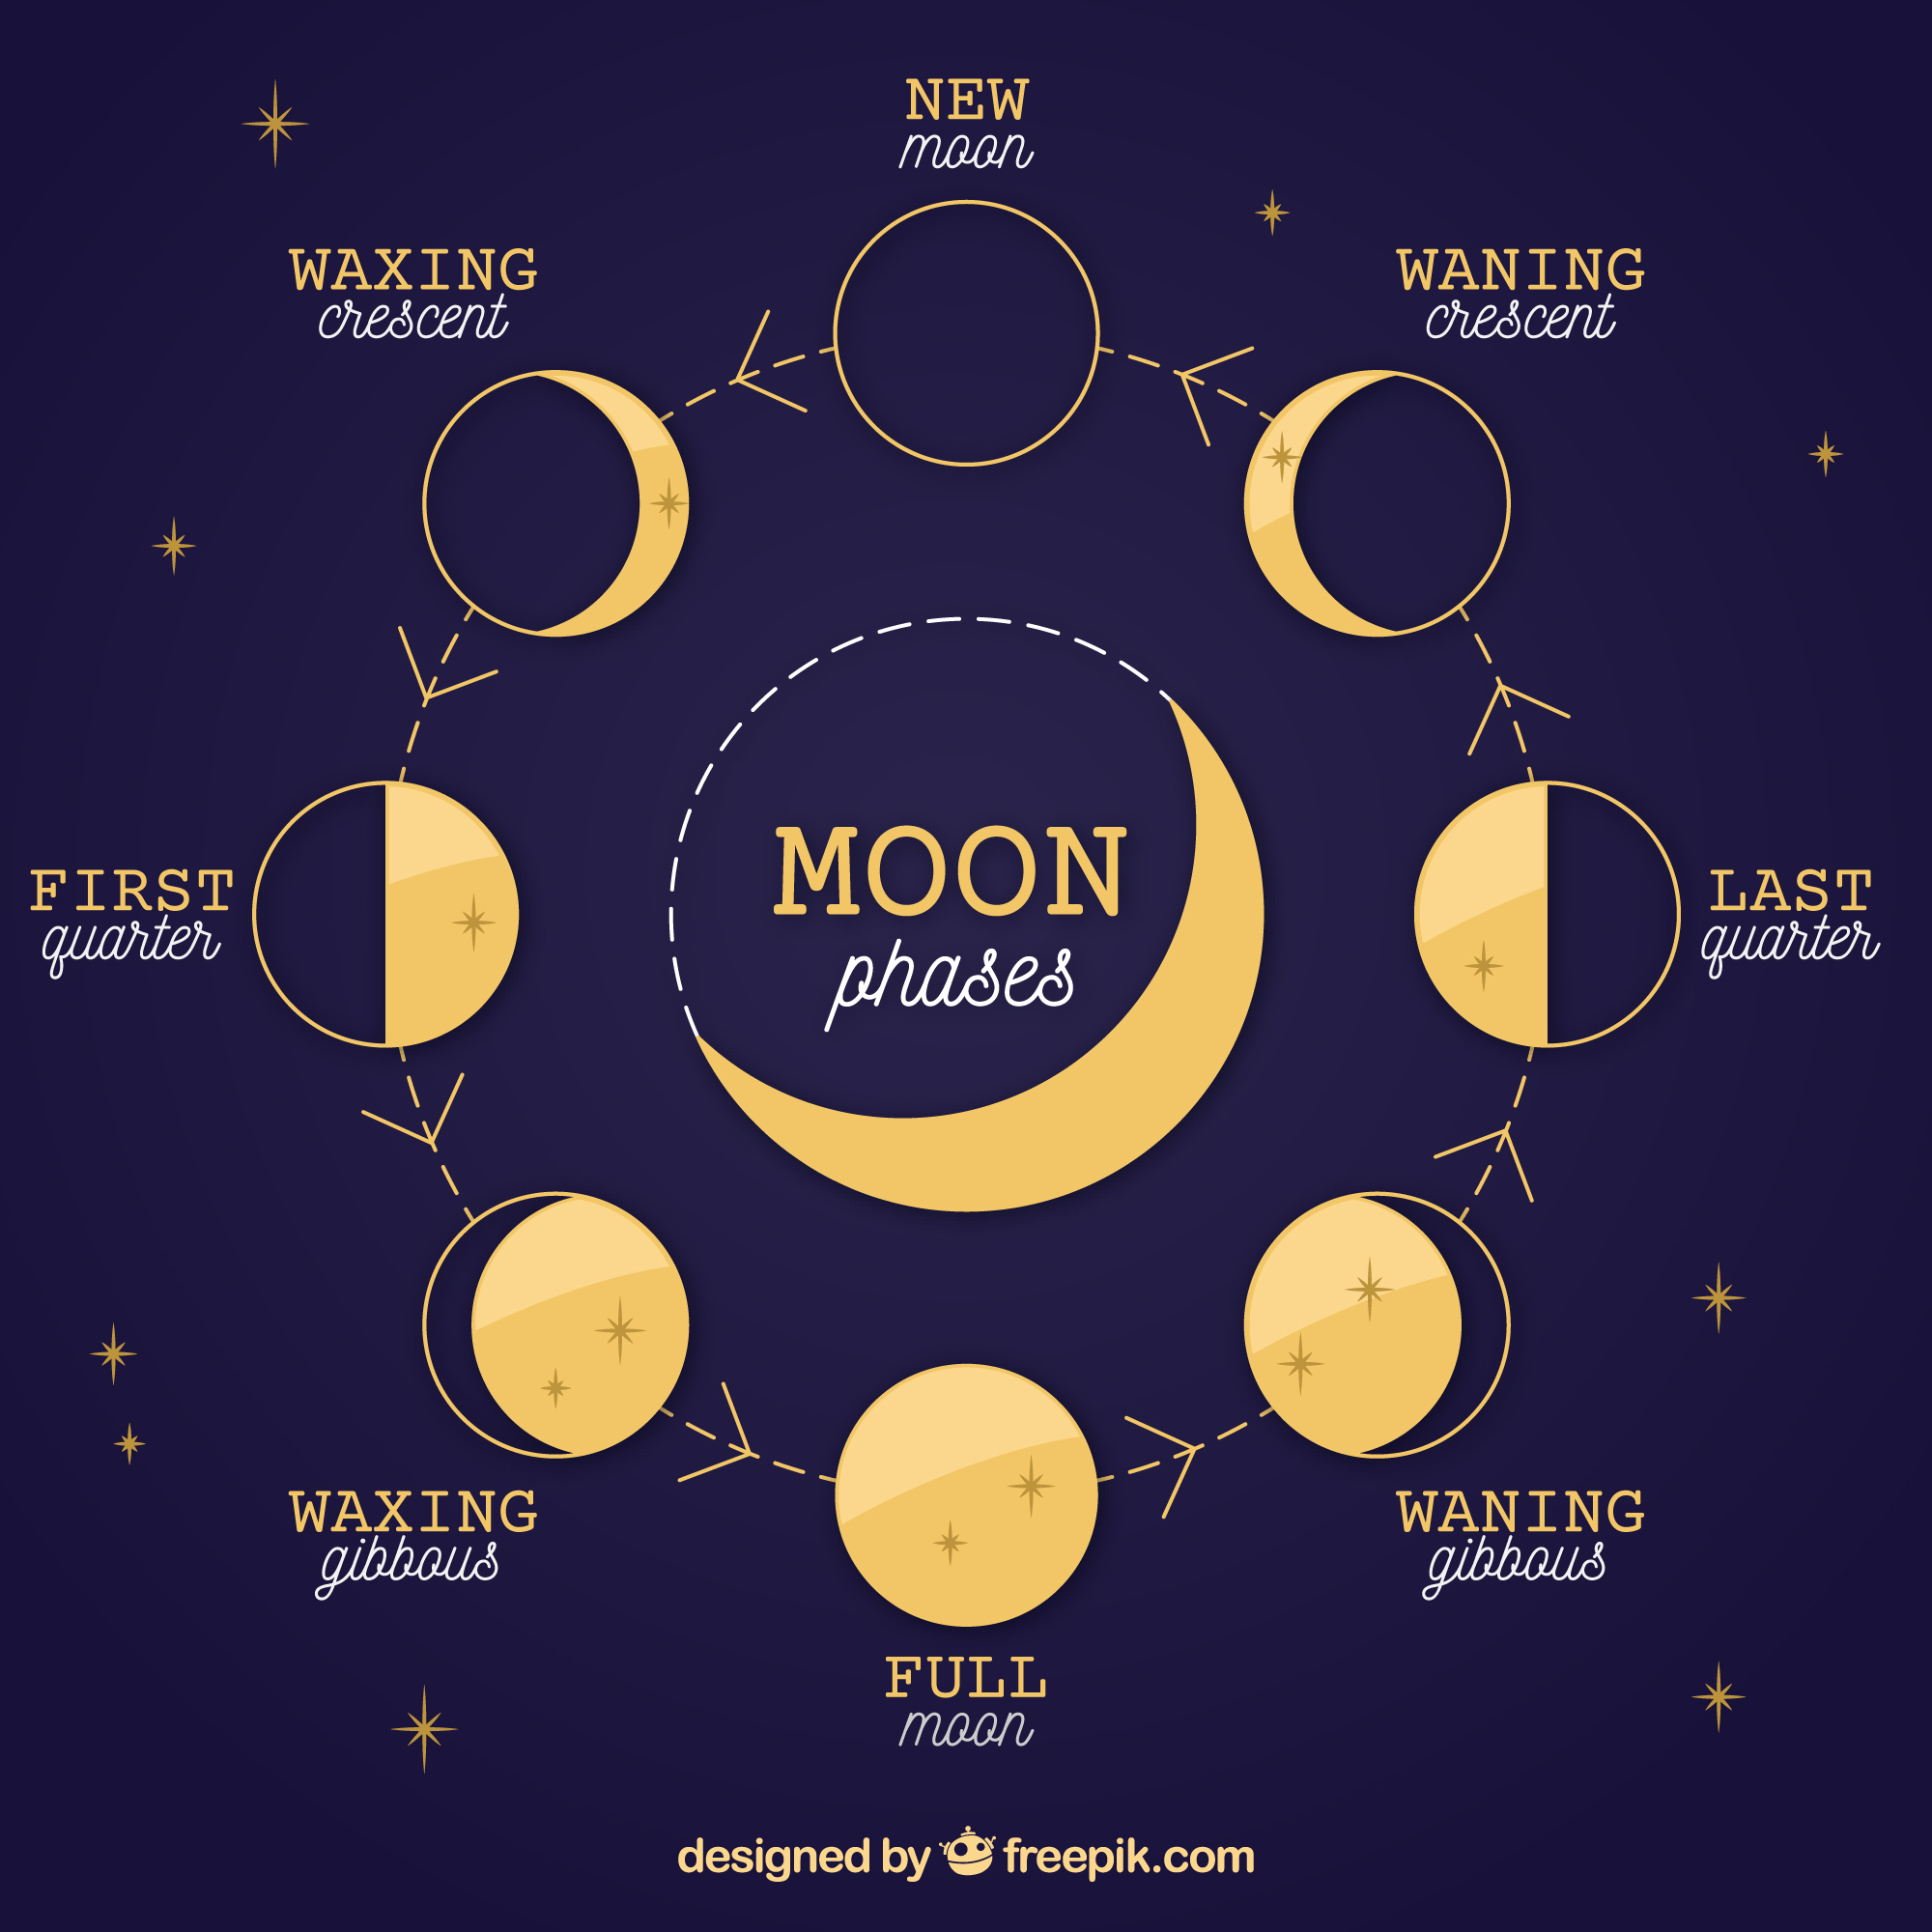 How to cleanse crystals by the full moon ethan lazzerini moon phase chart pooptronica Choice Image